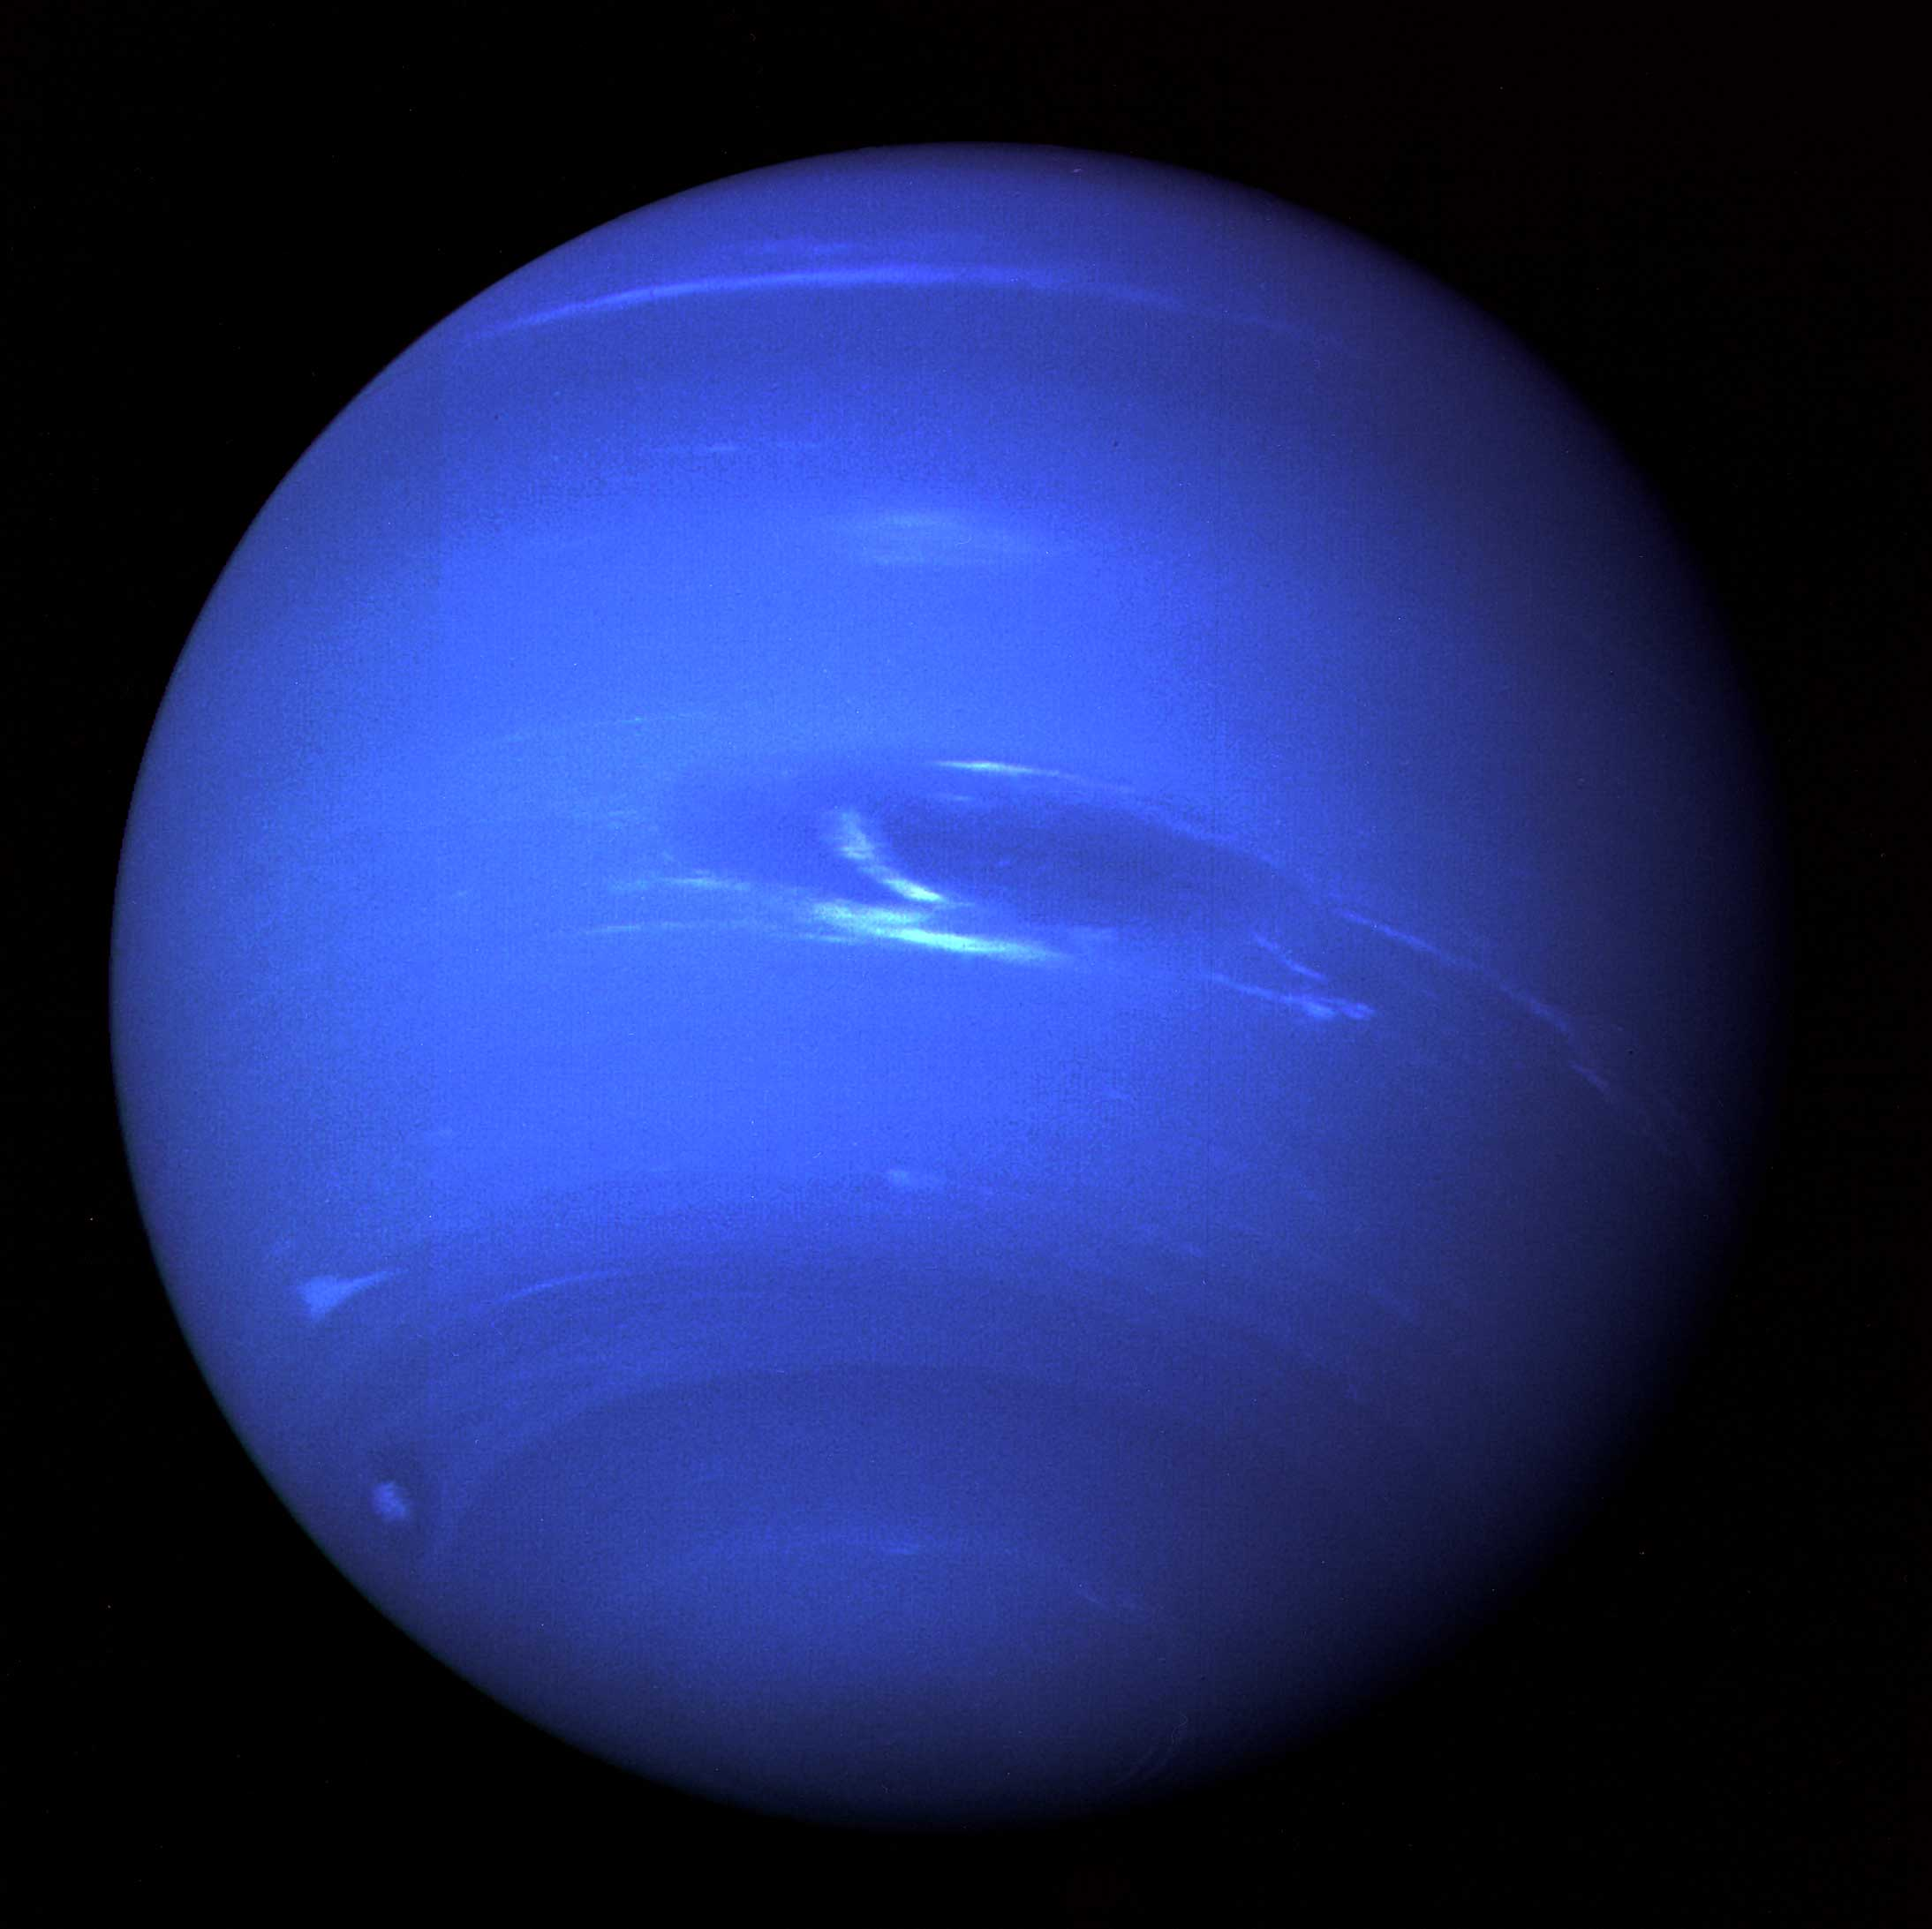 Hd Real Images Of Uranus The Planet